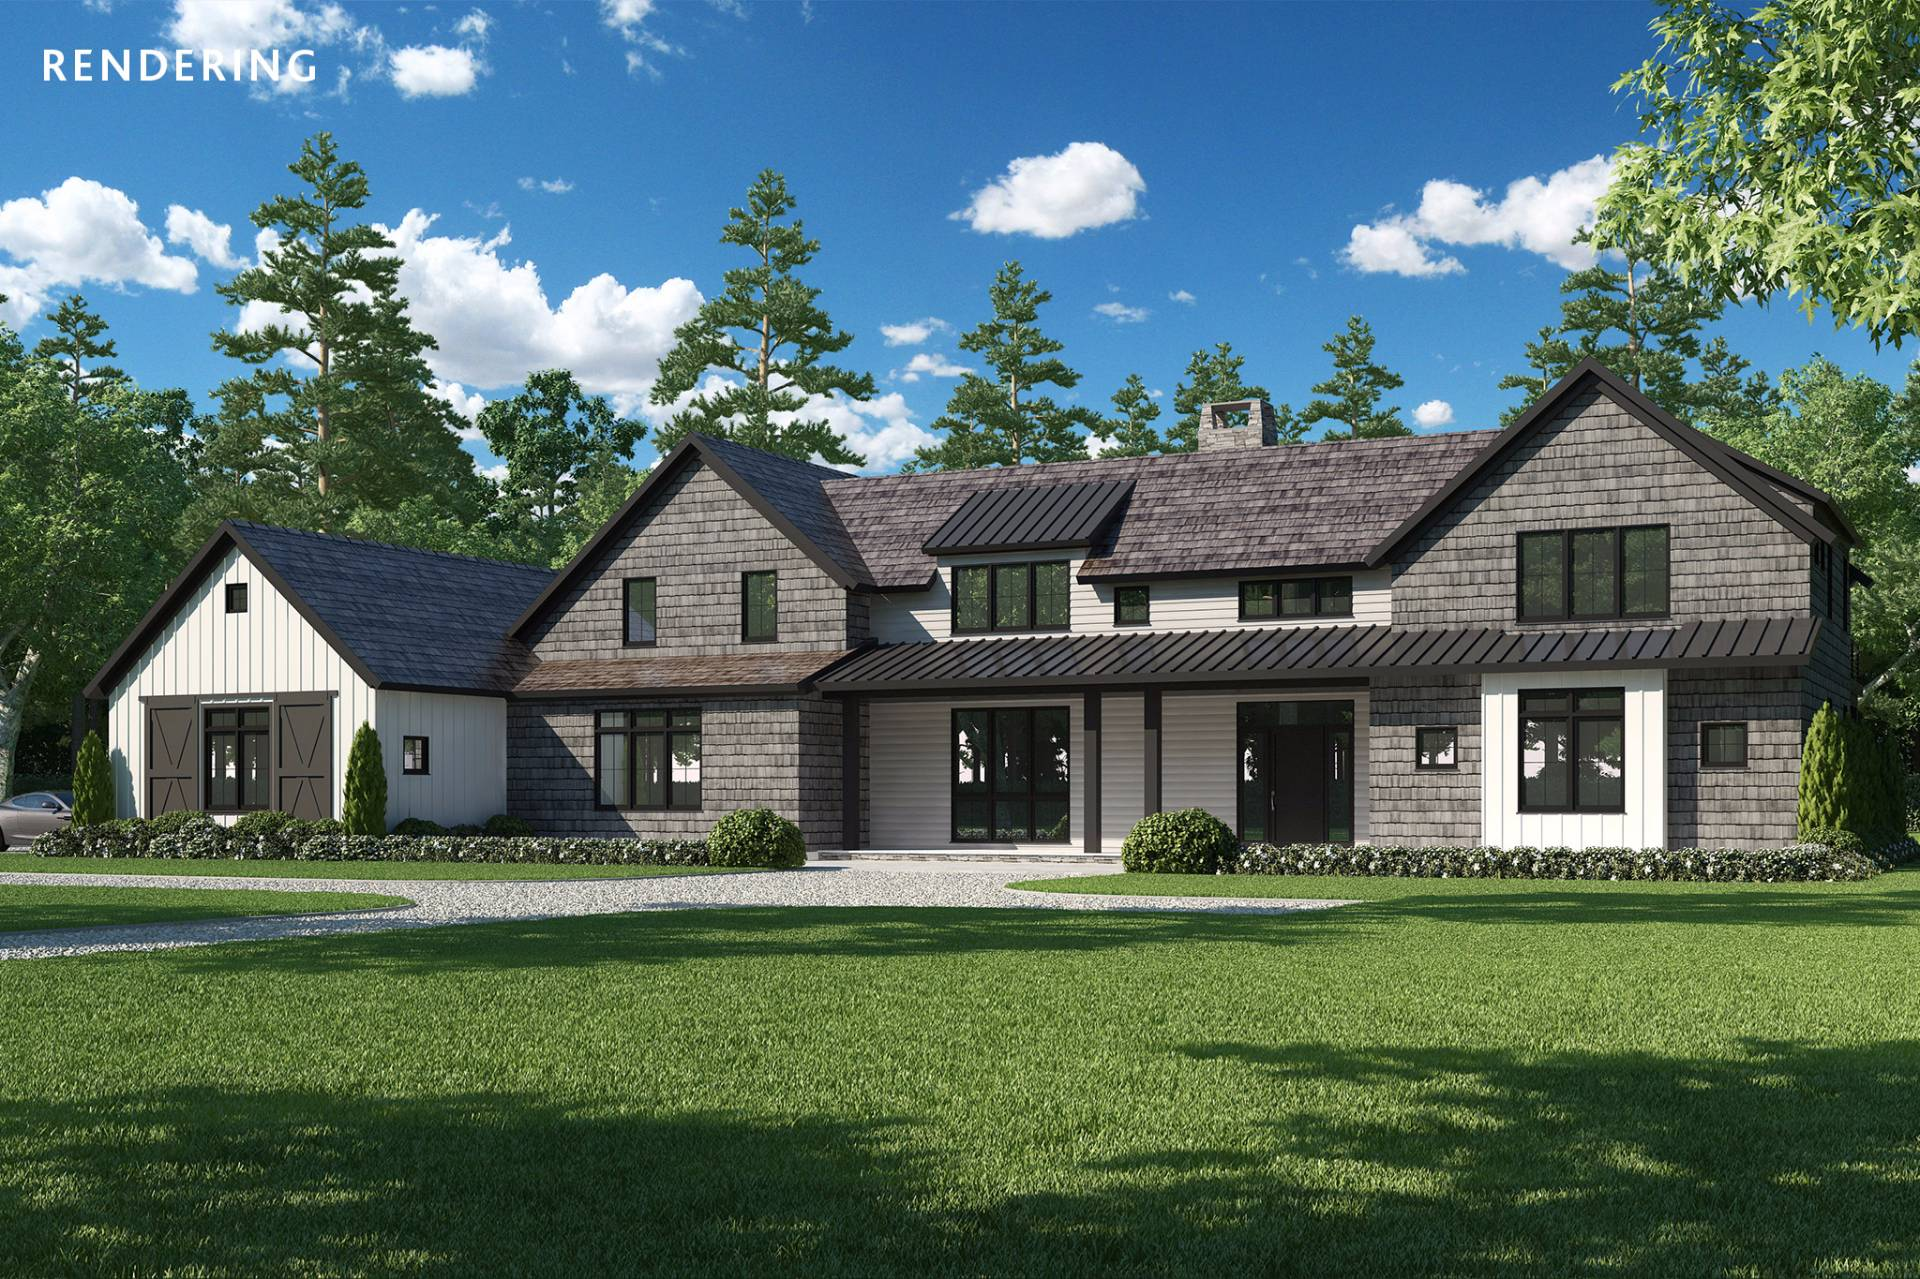 Single Family Home for Sale at New Construction Bordering Reserve With Tennis Bridgehampton, New York